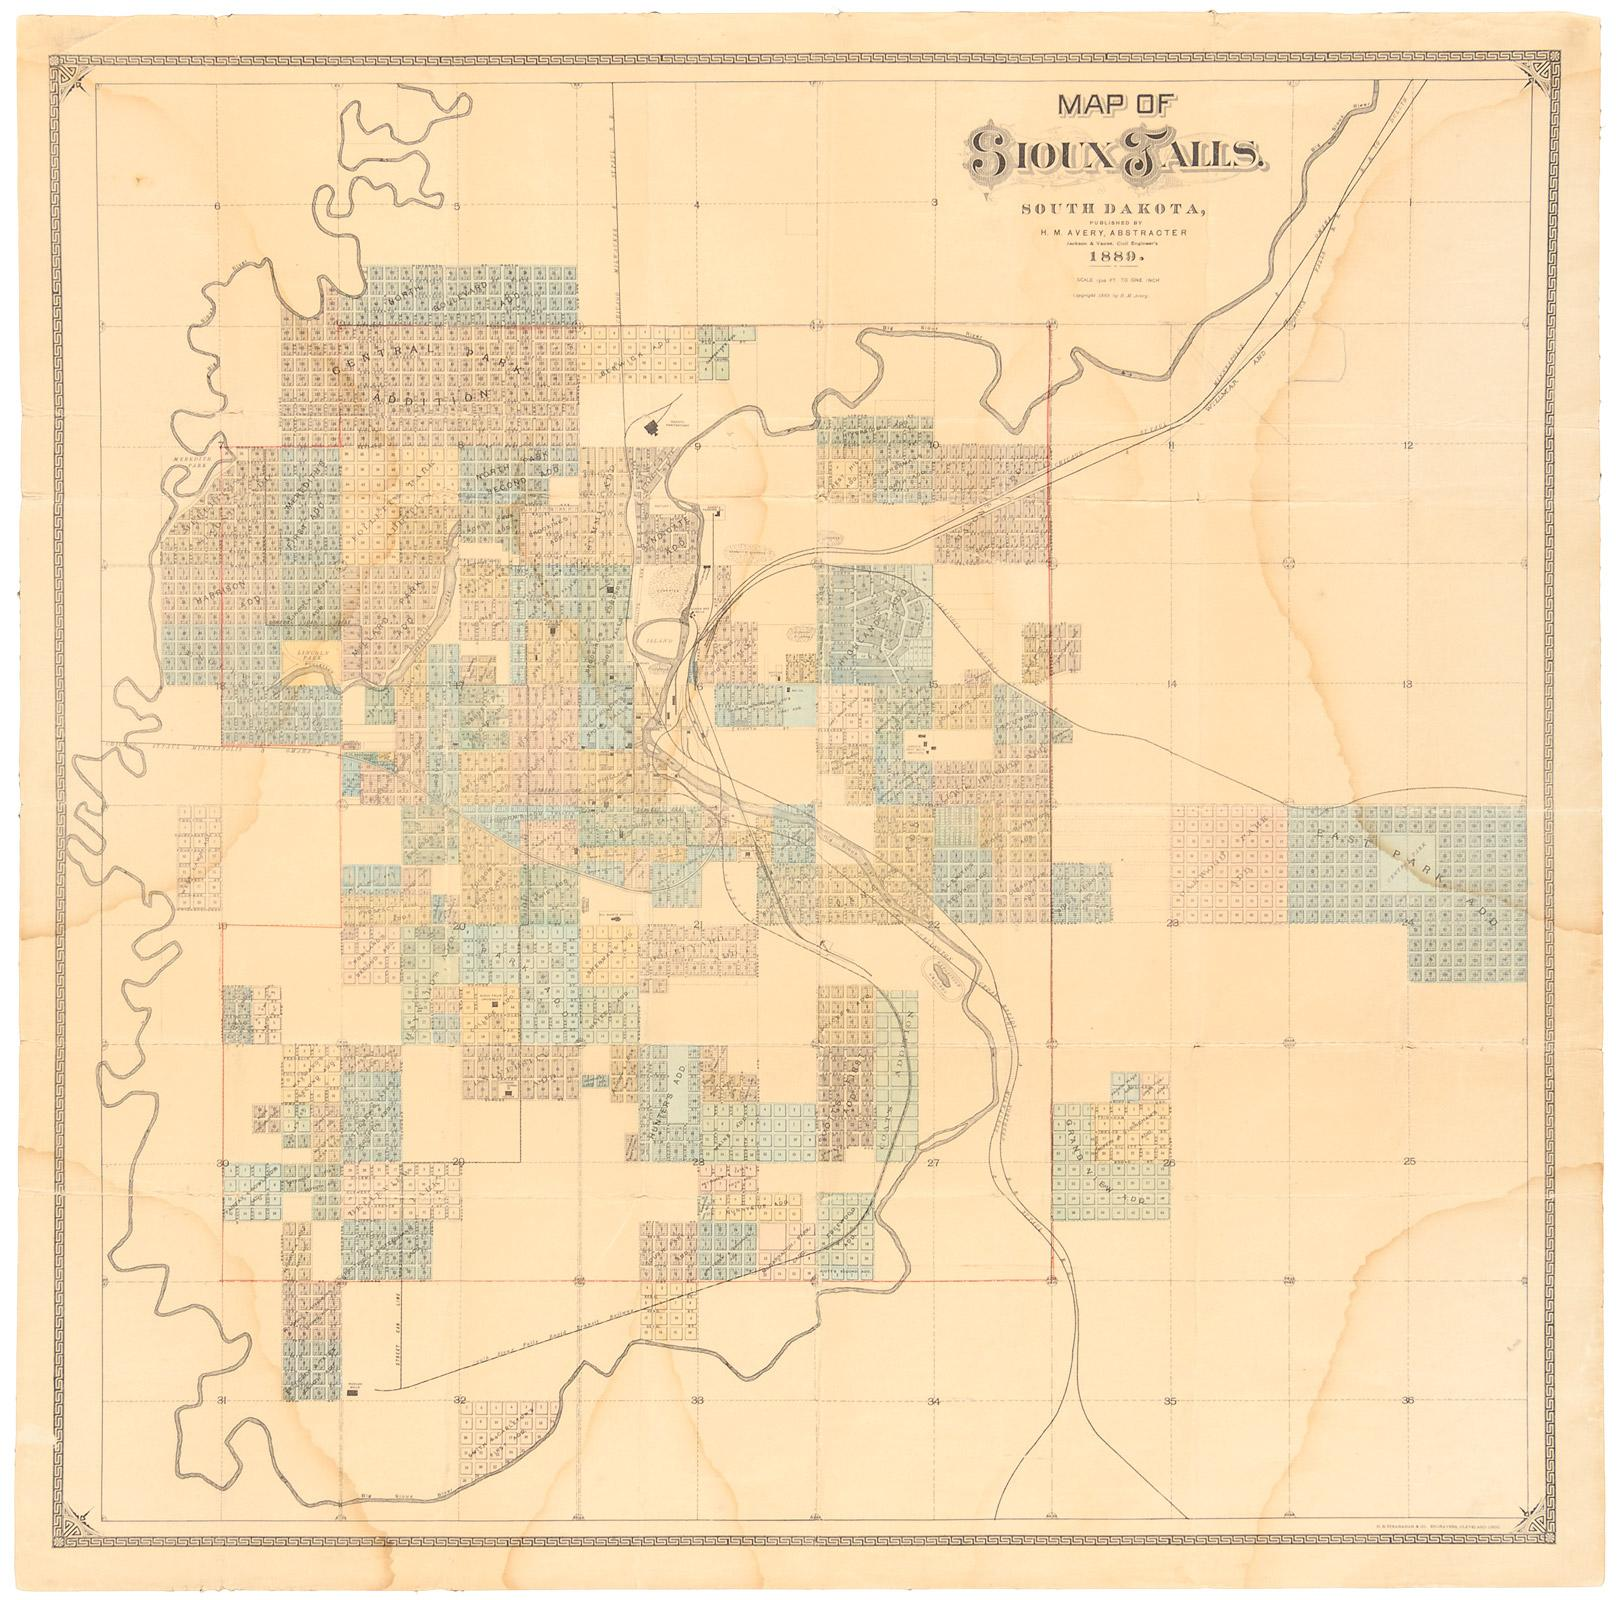 Map of Sioux Falls, Dakota - Price Estimate: $500 - $800 Sioux Falls Map on cedar rapids map, iowa map, akron canton map, brookings sd map, grand junction map, corpus christi map, mount rushmore national memorial map, mankato map, san francisco map, black hills map, brownsville map, lincoln map, big sioux river map, rochester map, city map, south dakota map, east valley zip code map, minnehaha county map, rosebud sioux tribe map, norman map,